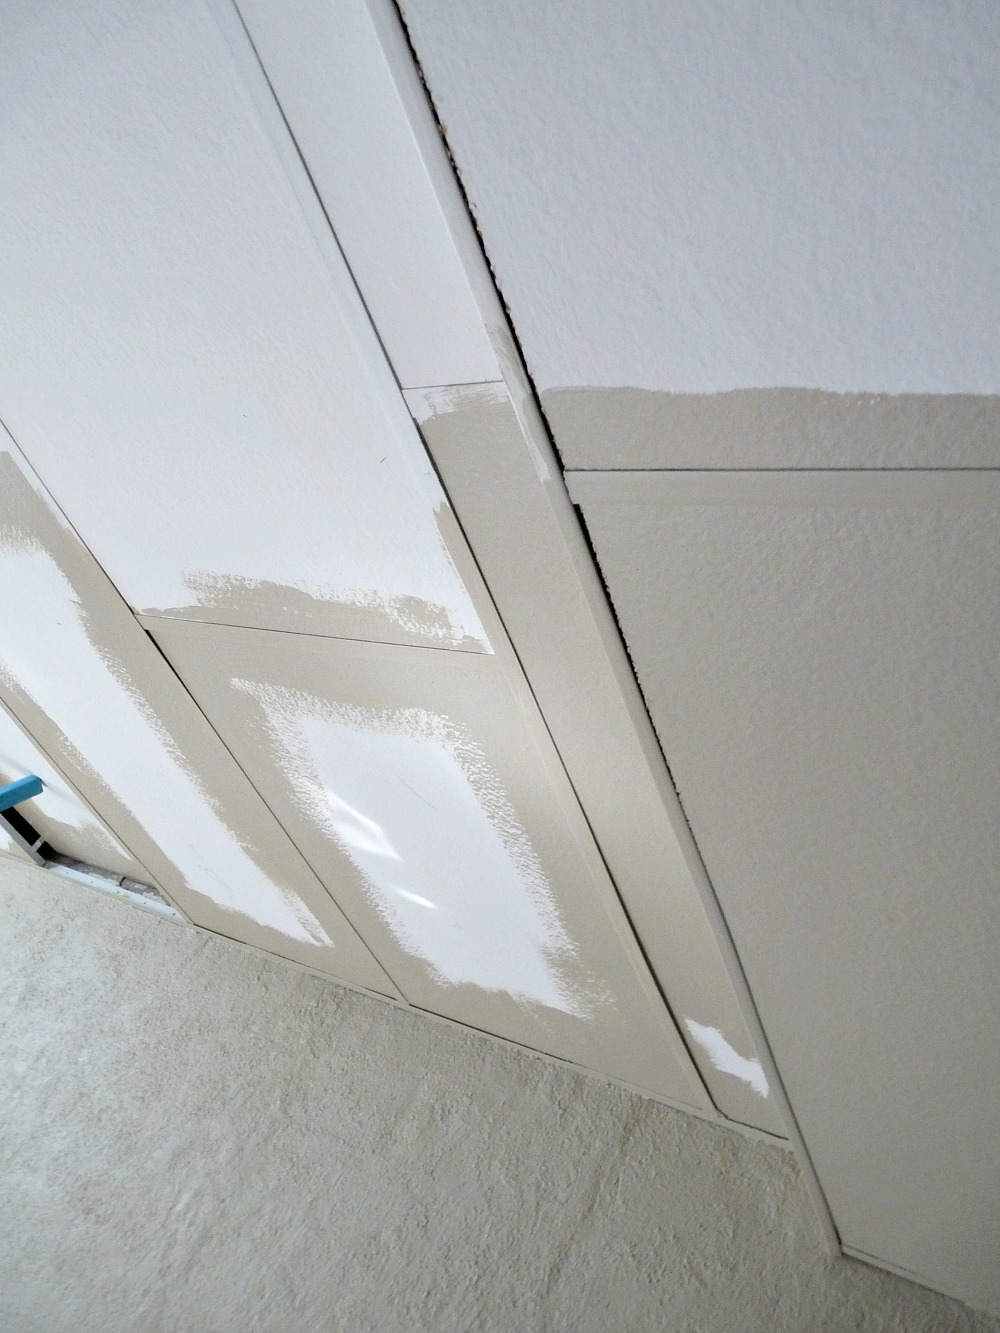 Basement update how to paint drop ceilings you cannot remove cannot remove ceiling tiles heres how to paint them dailygadgetfo Choice Image